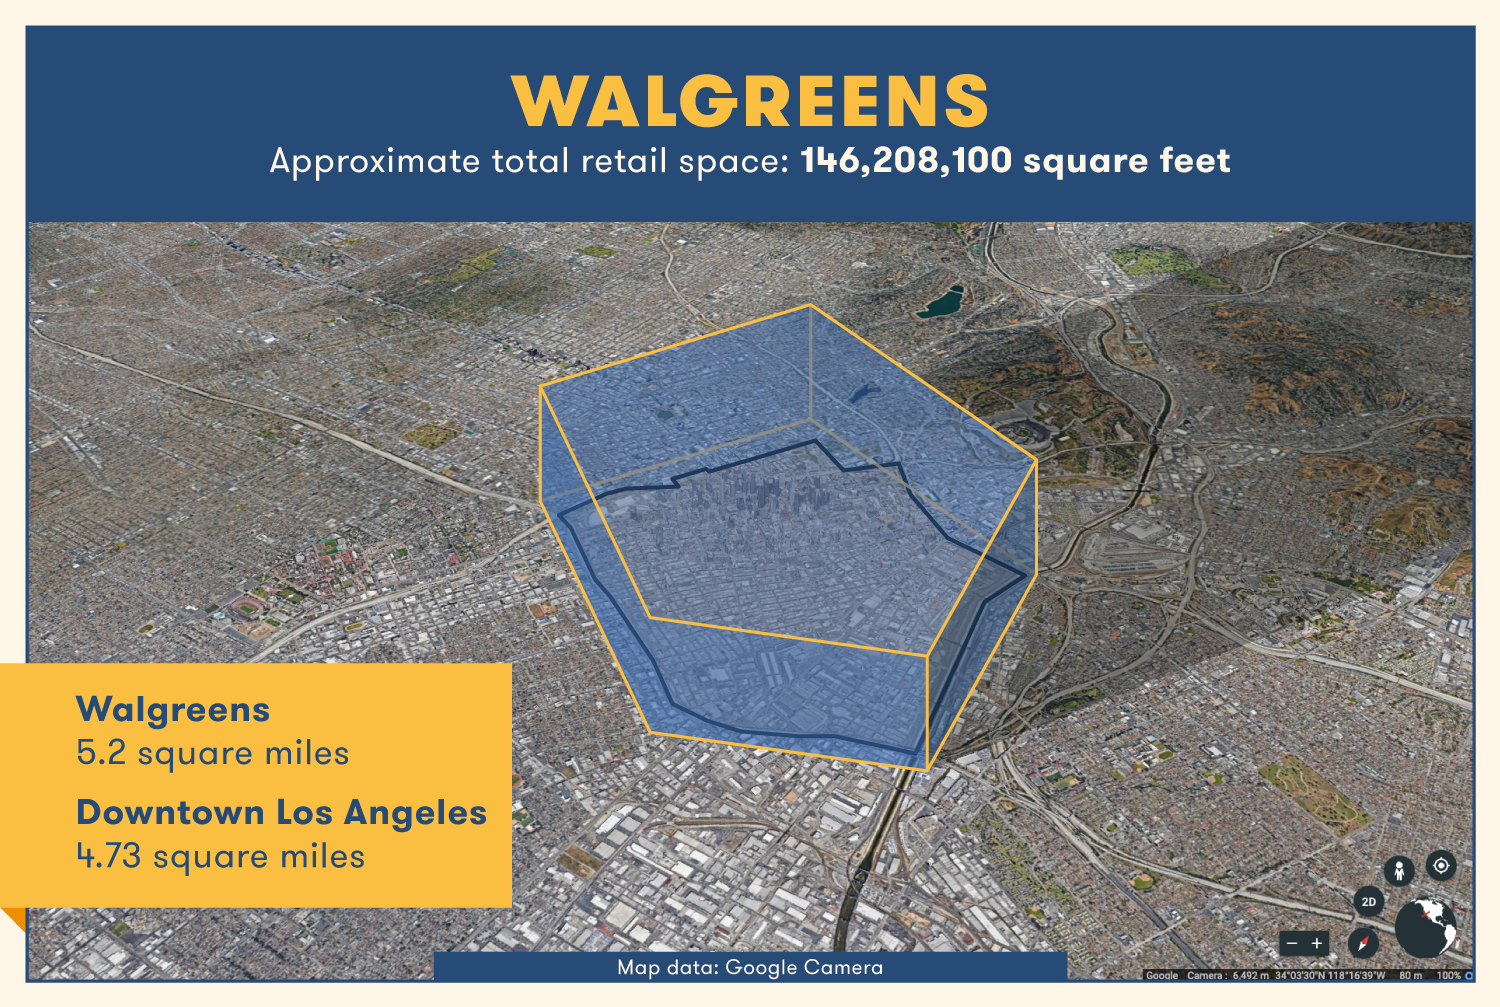 A giant Walgreens would cover an area of 5.2 square miles — slightly larger than the size of downtown Los Angeles.